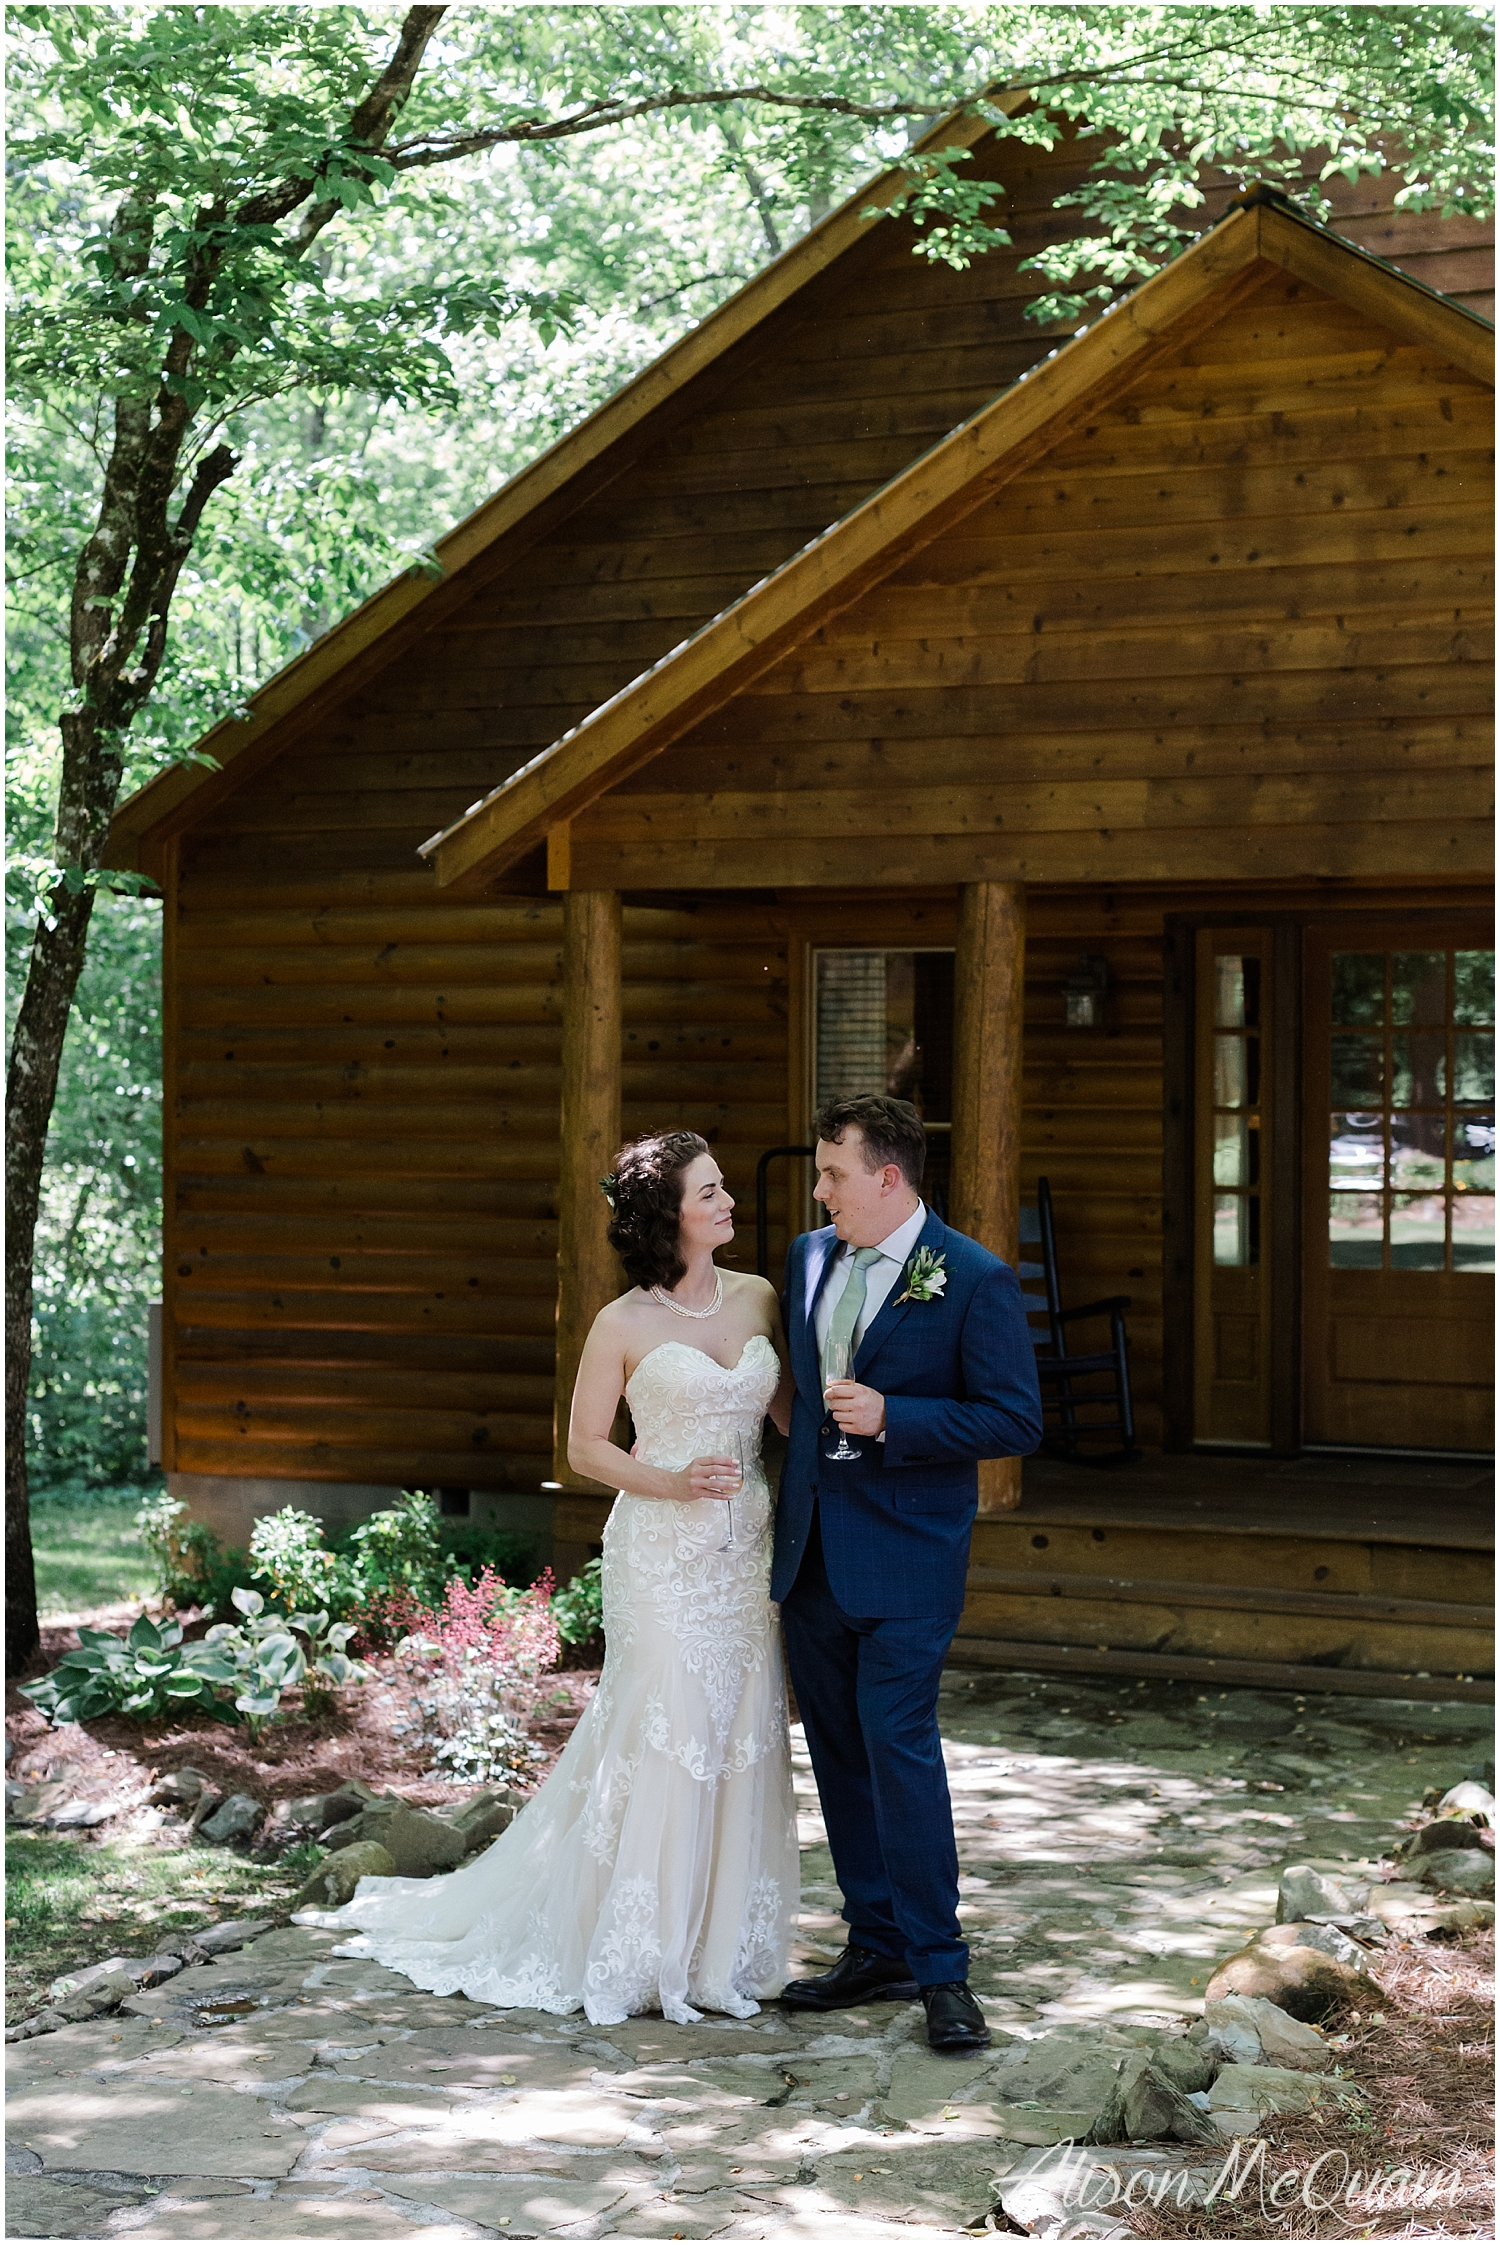 2018-05-23_0003LandC_wedding_dancingbearlodge_townsend_tn_amp.jpg